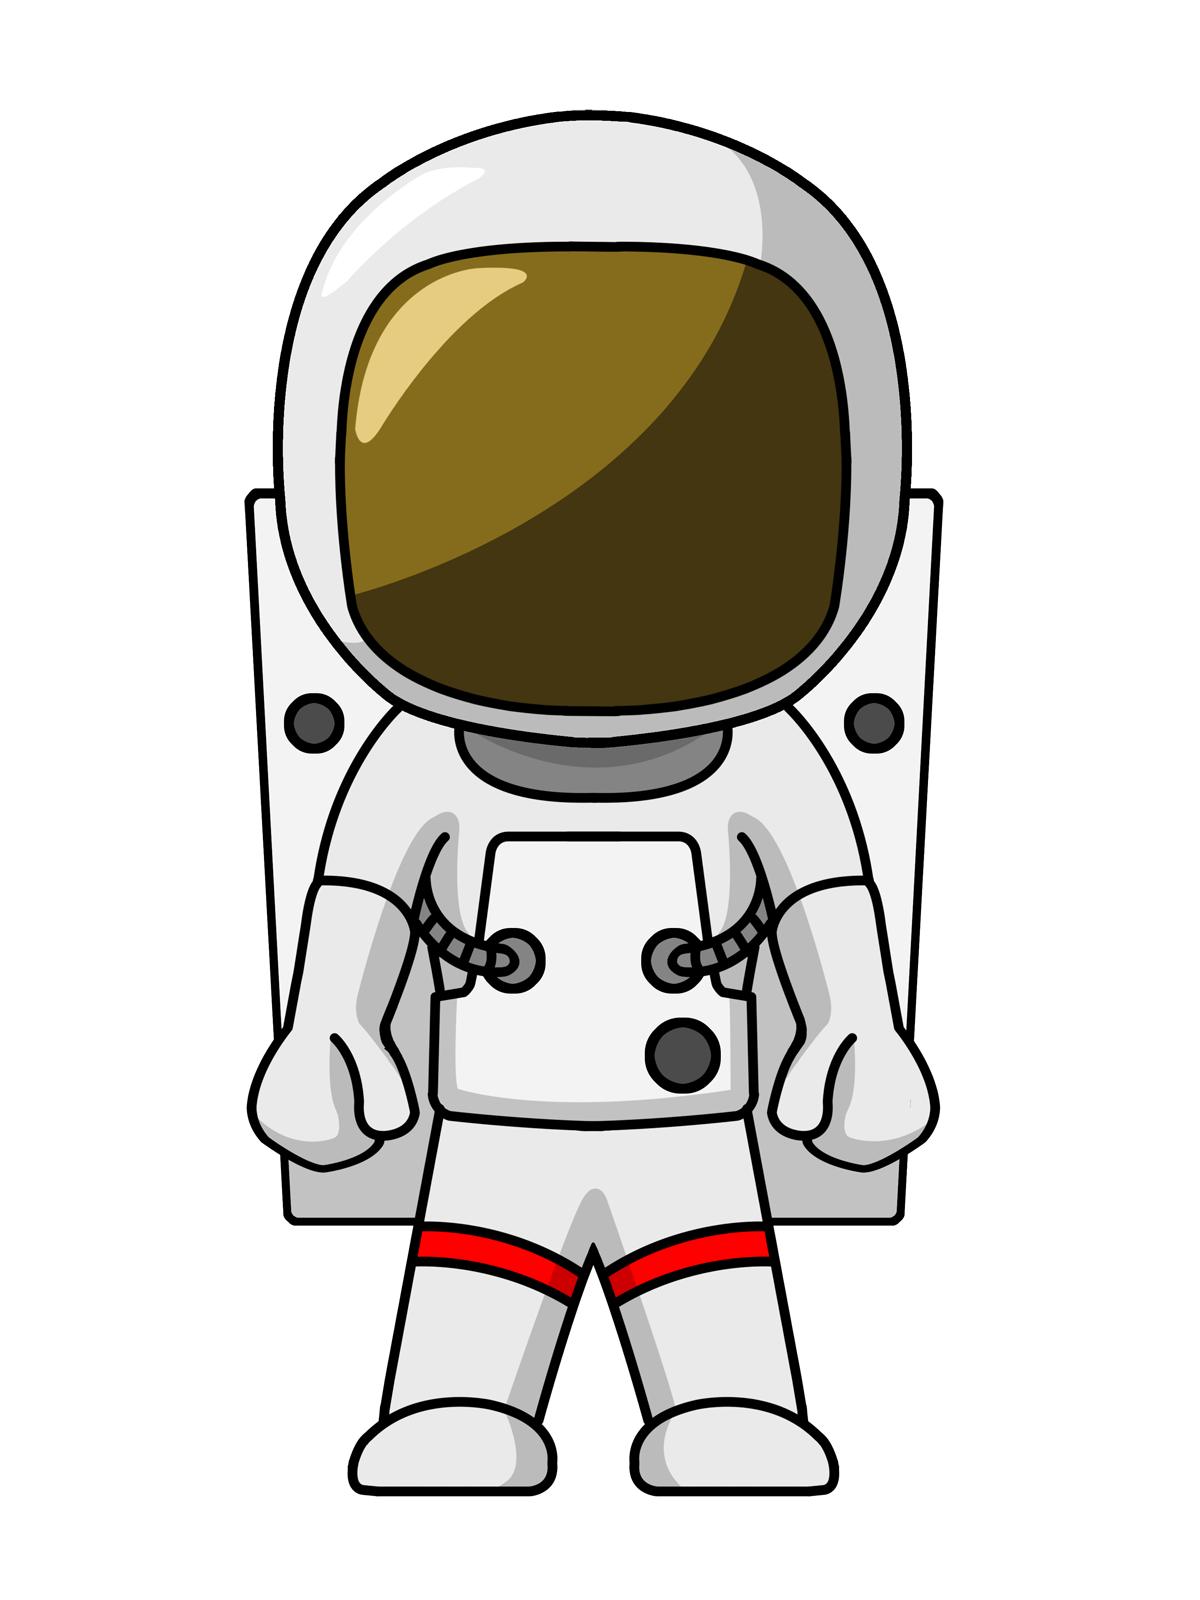 The vortex tunnel and. Astronaut clipart body picture